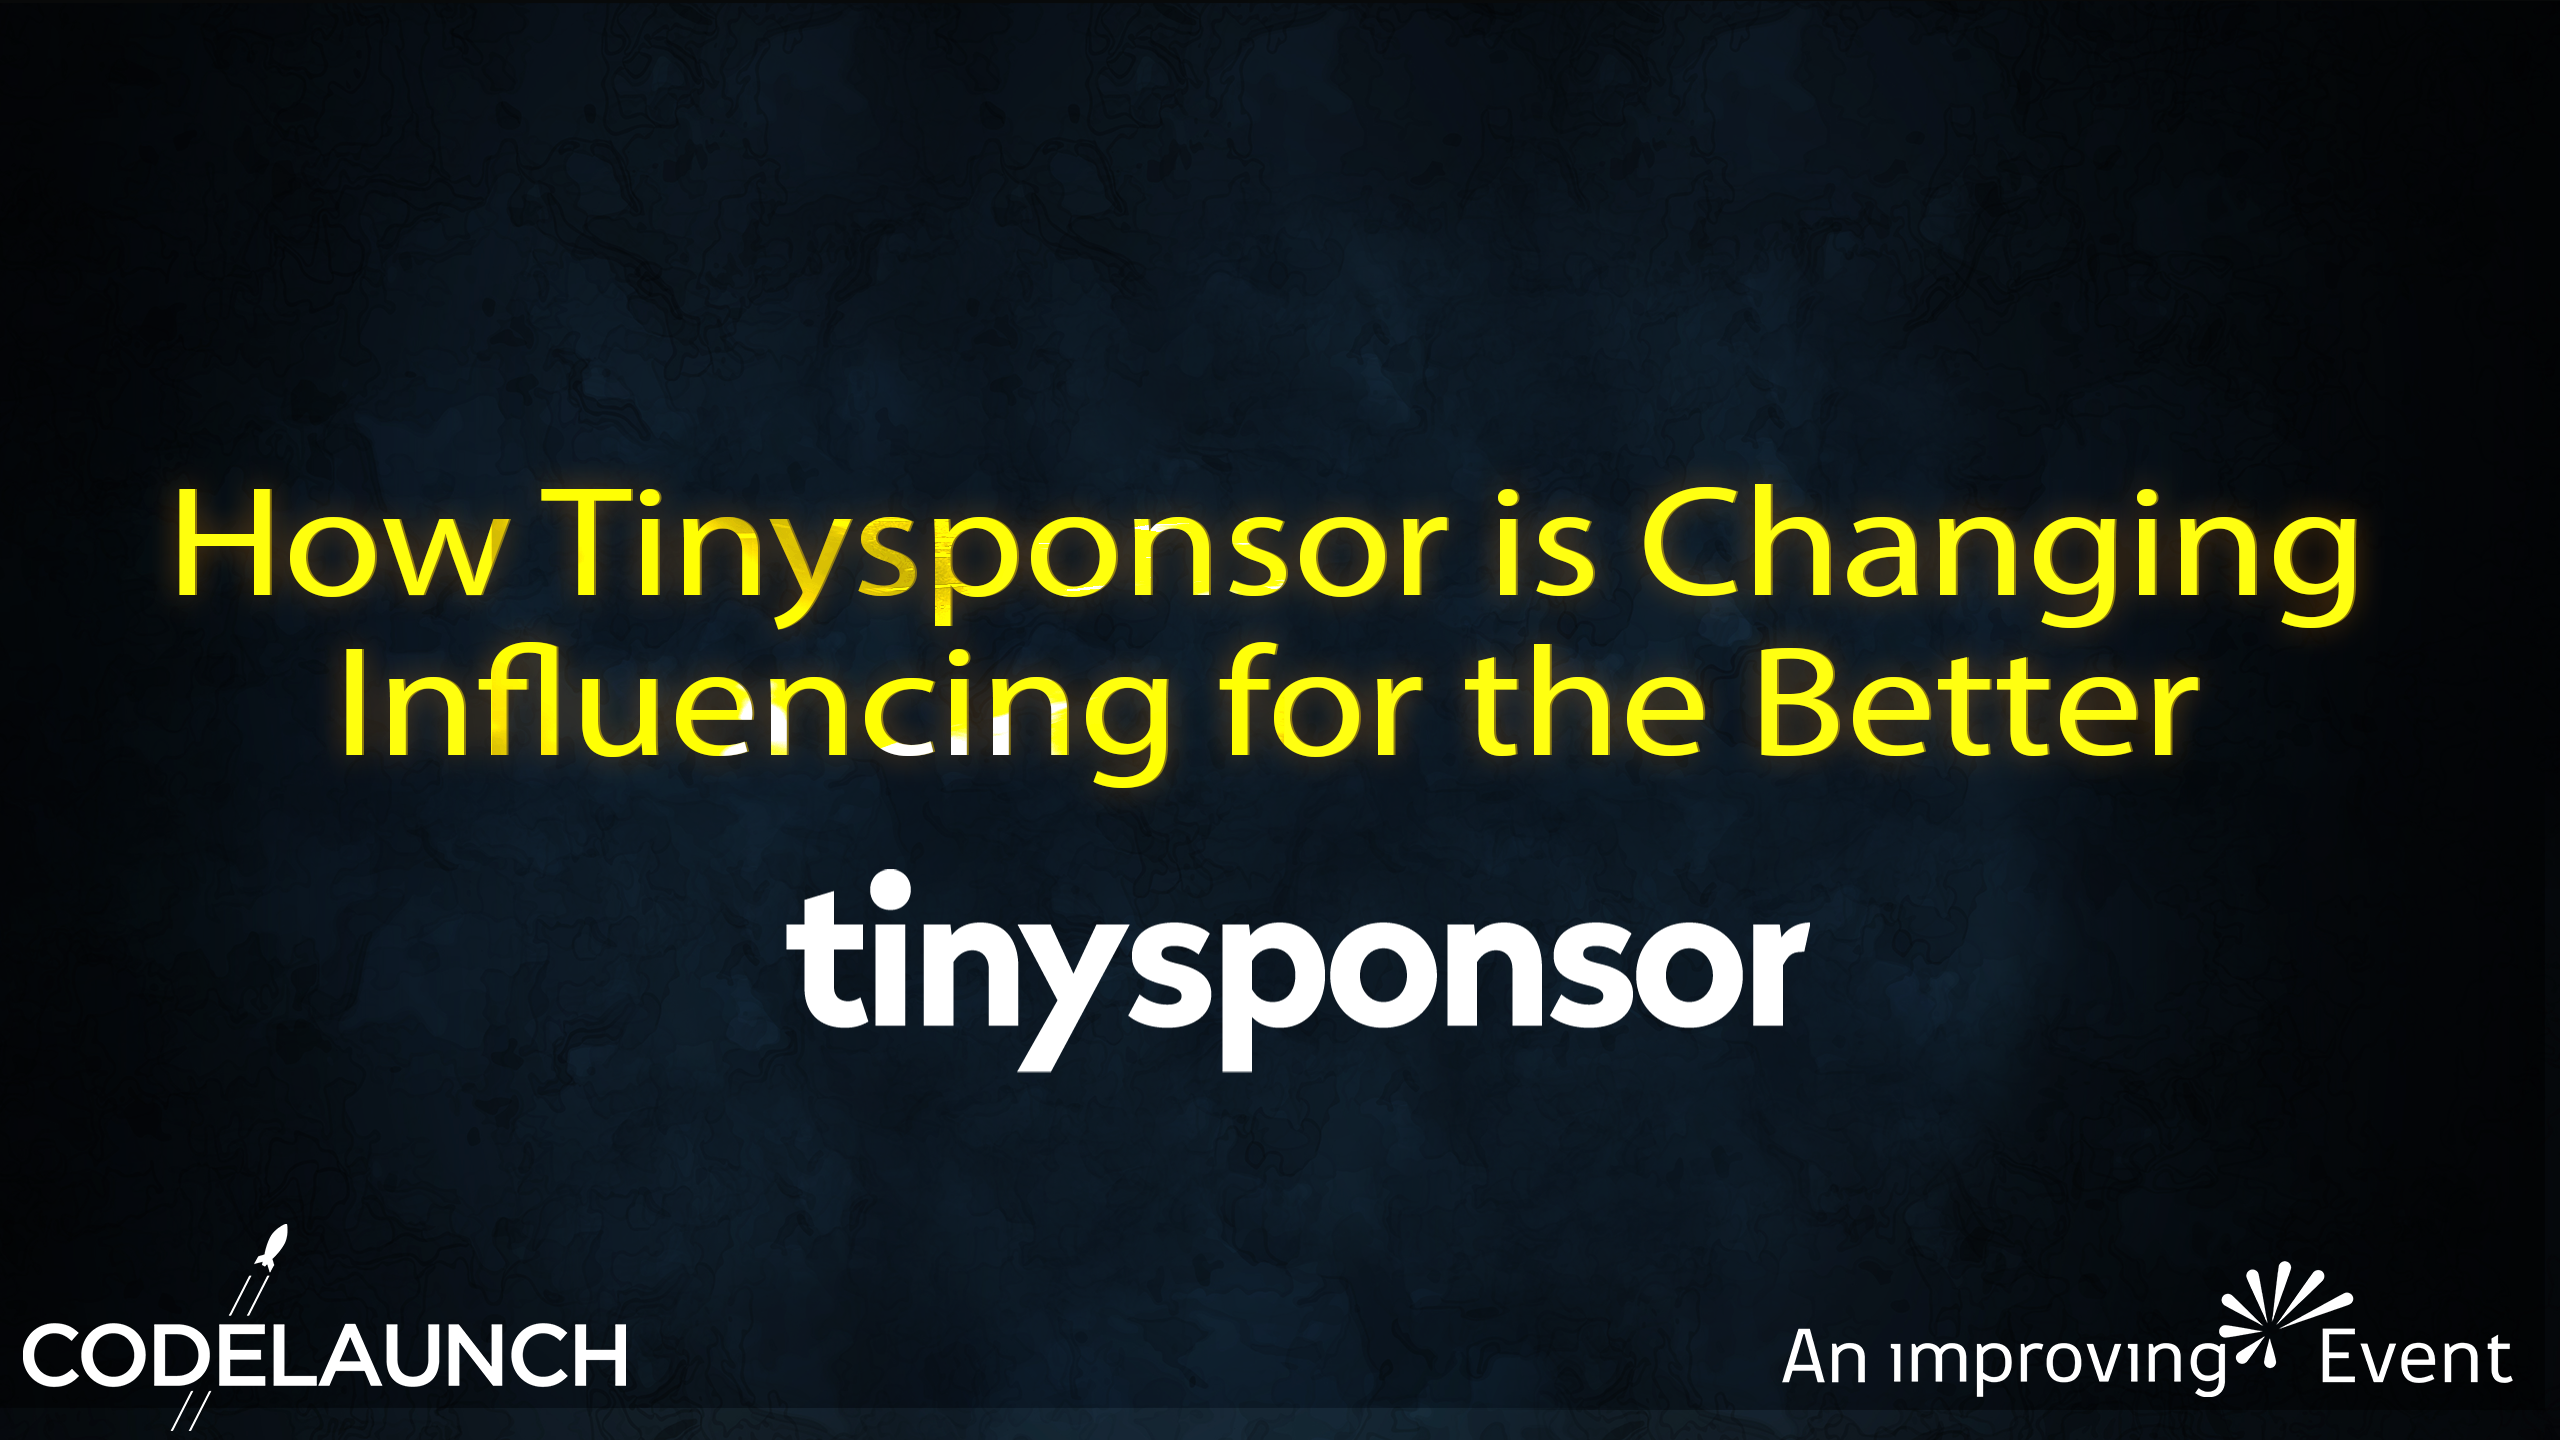 How Tinysponsor is Changing Influencing for the Better